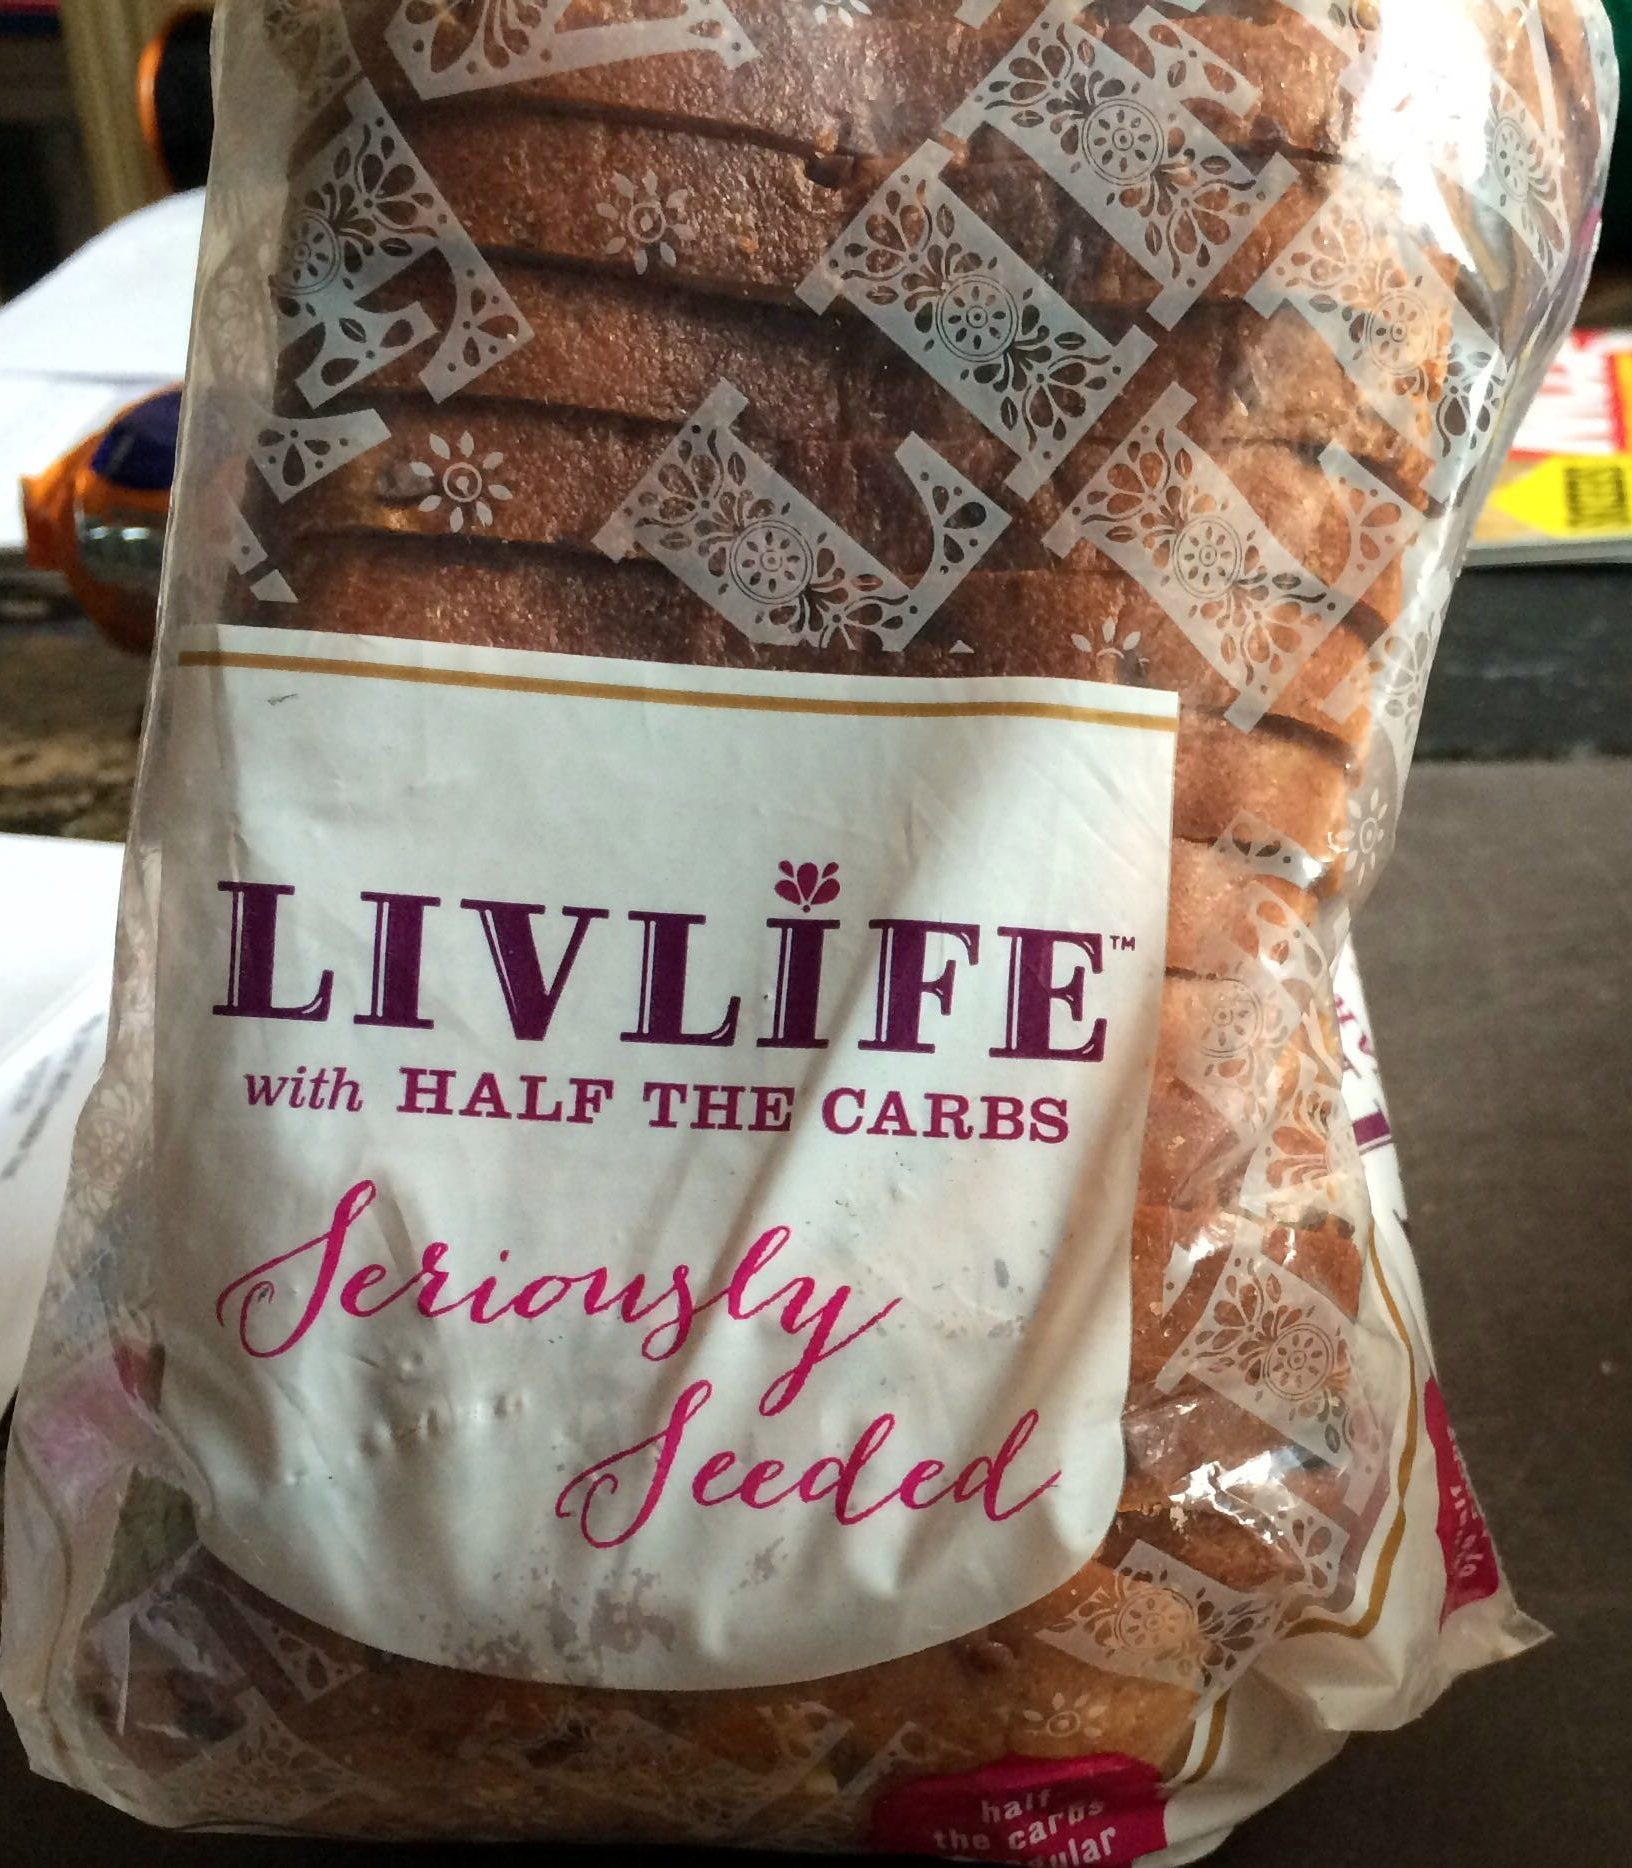 Livlife with Half the Carbs Seriously Seeded - Produkt - en